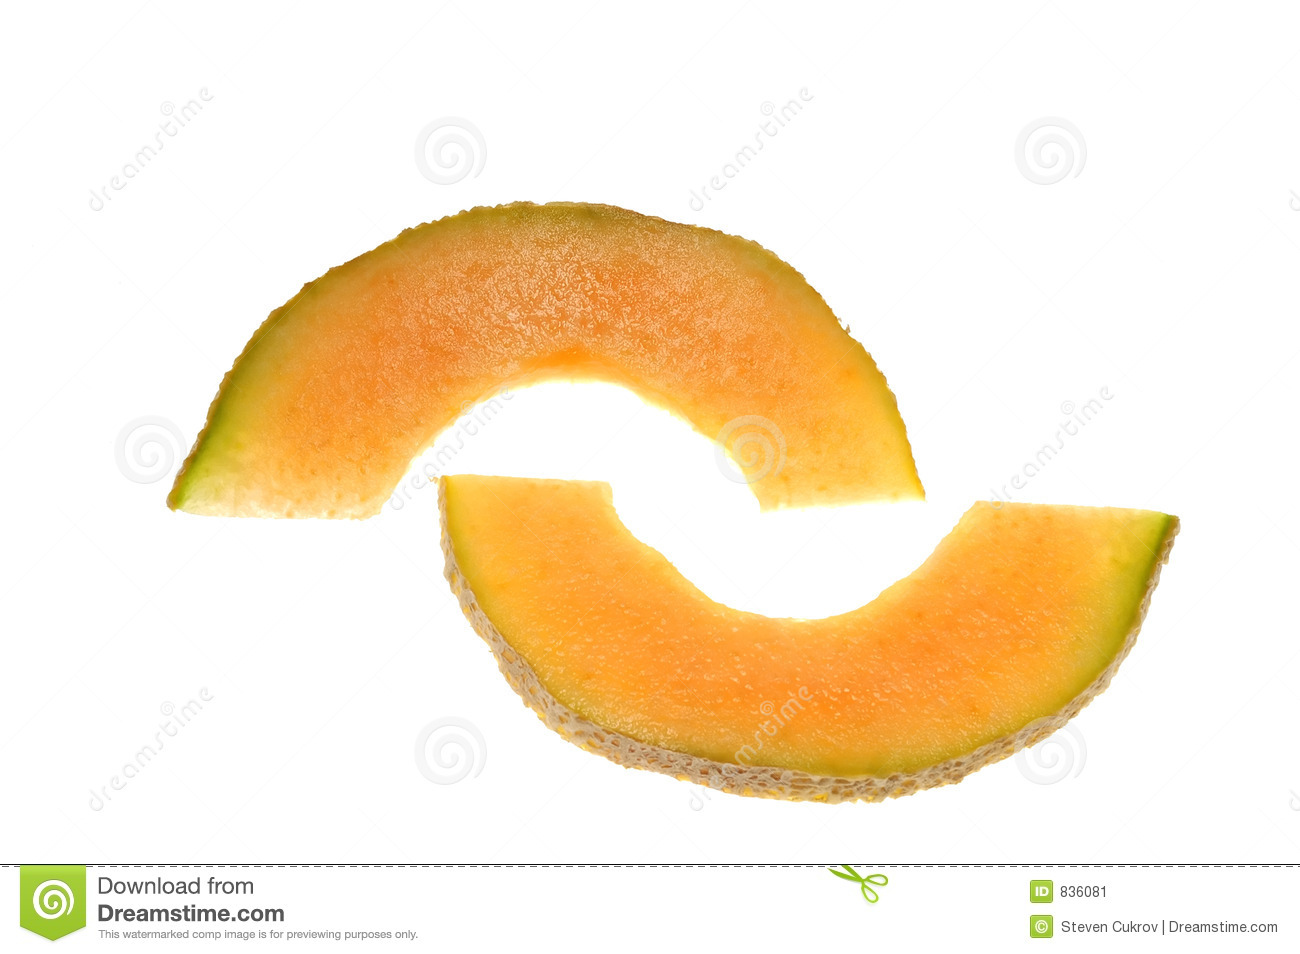 how to cut cantaloupe slices